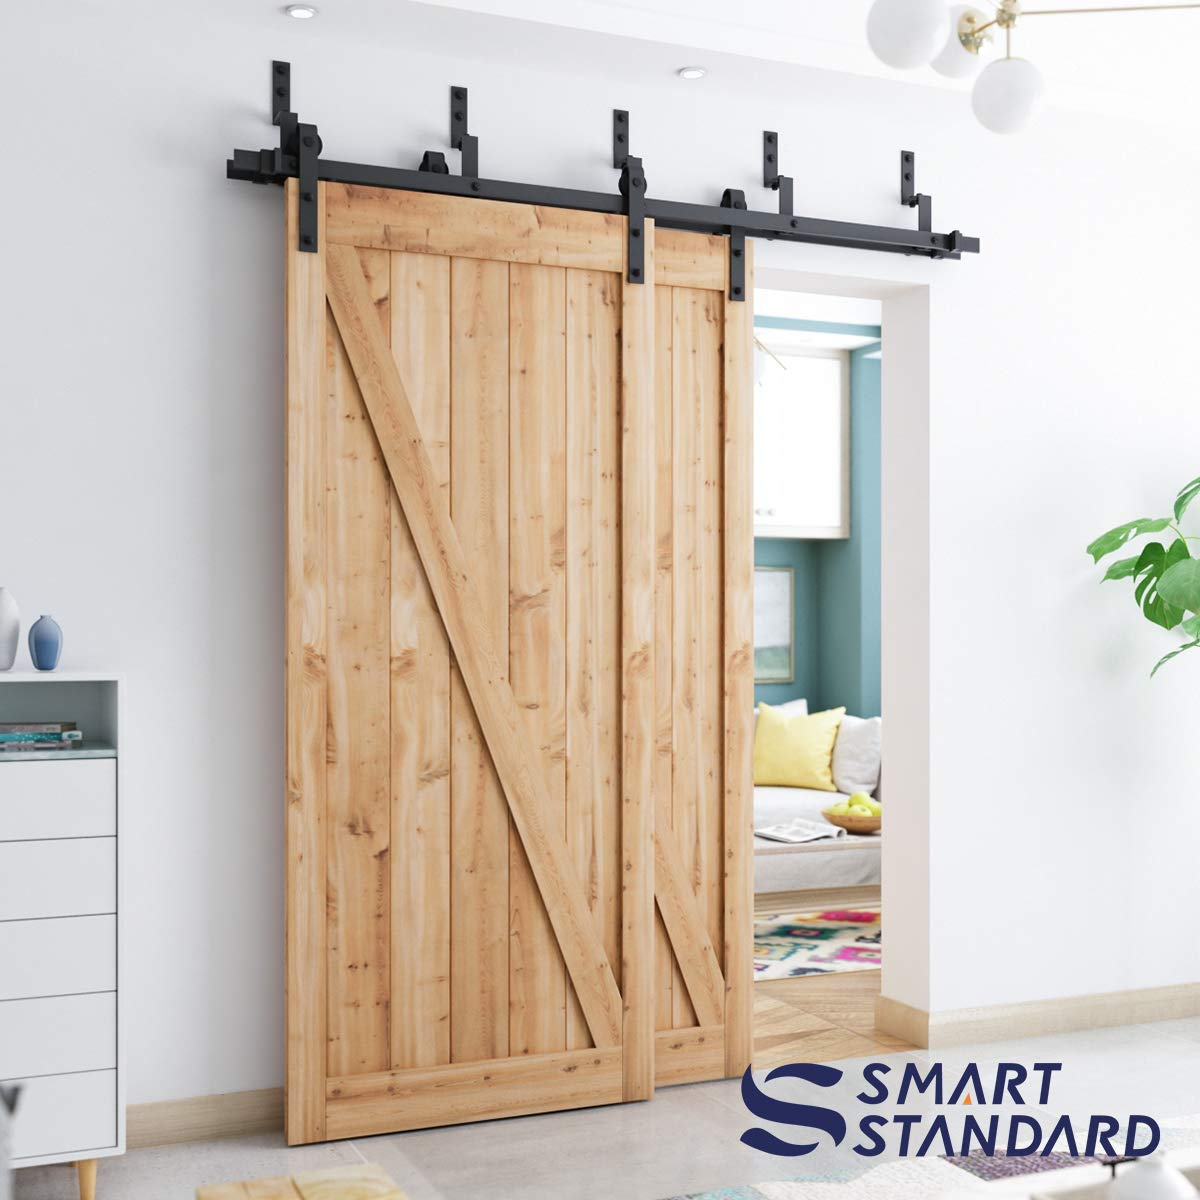 SMARTSTANDARD 6 6ft Heavy Duty Bypass Double Door Sliding Barn Door  Hardware Kit - Smoothly &Quietly -Easy to install - Includes Step-By-Step